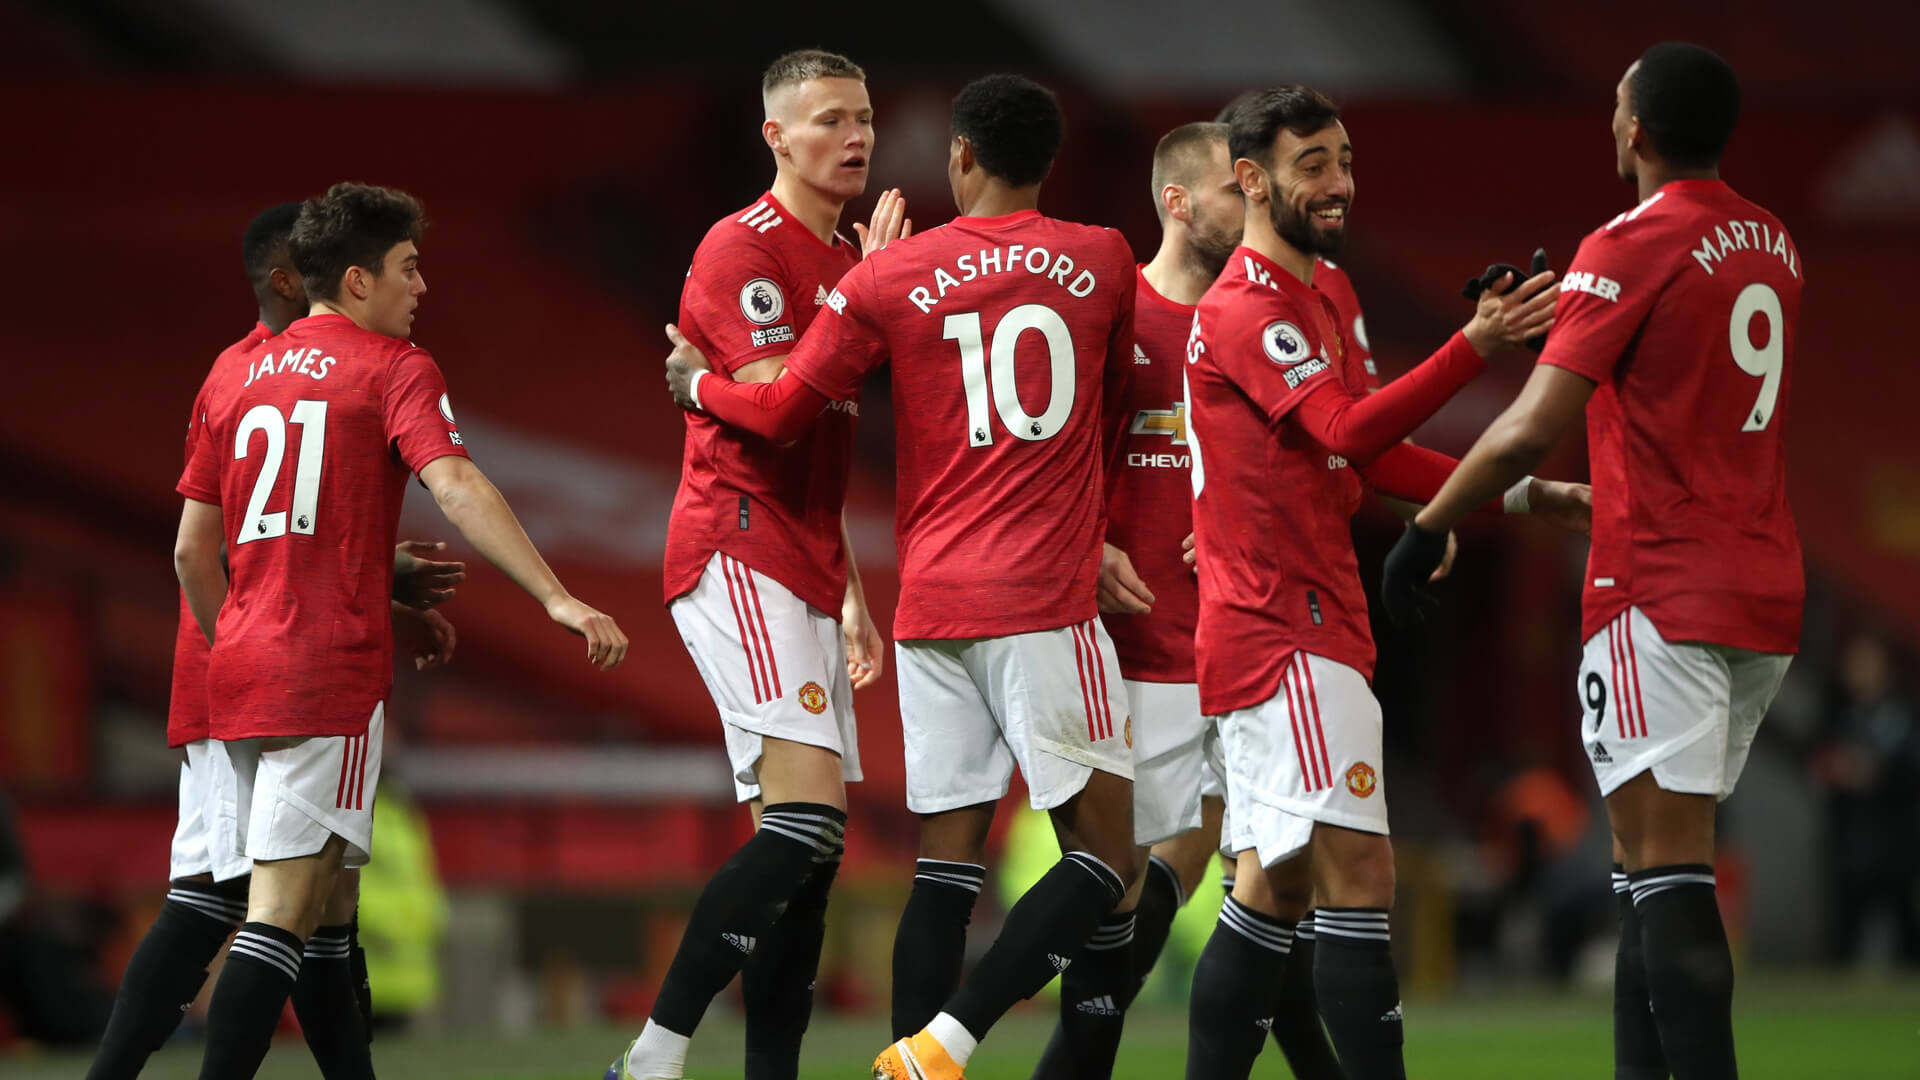 5 Things We Learned from Manchester United vs Leeds United